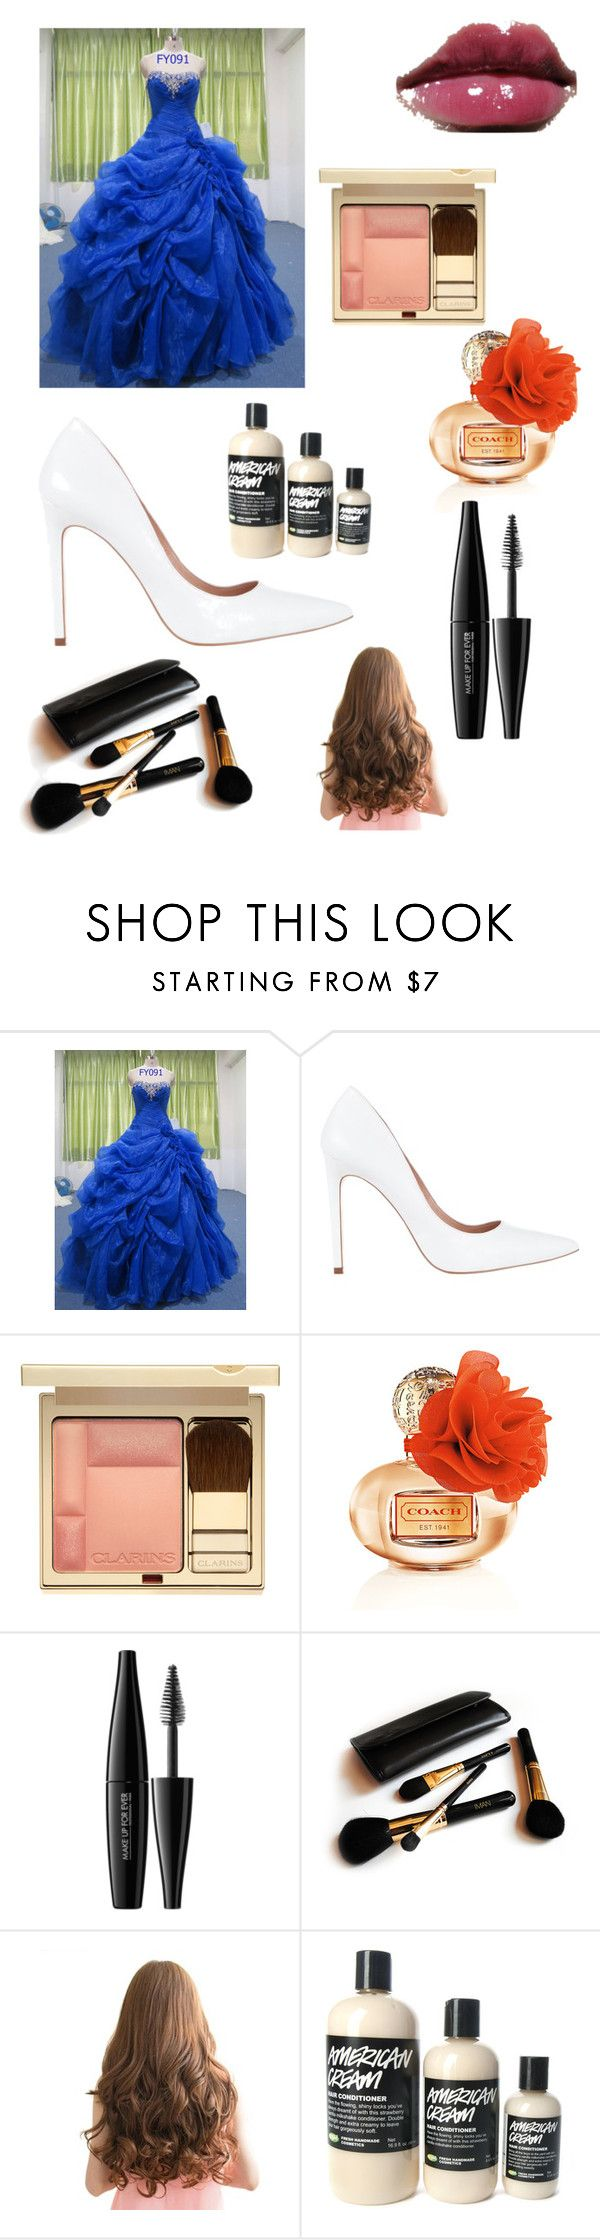 """My Quincera"" by savvvyfashionista ❤ liked on Polyvore featuring Diavolina, Shiseido, MAKE UP FOR EVER and Iman"